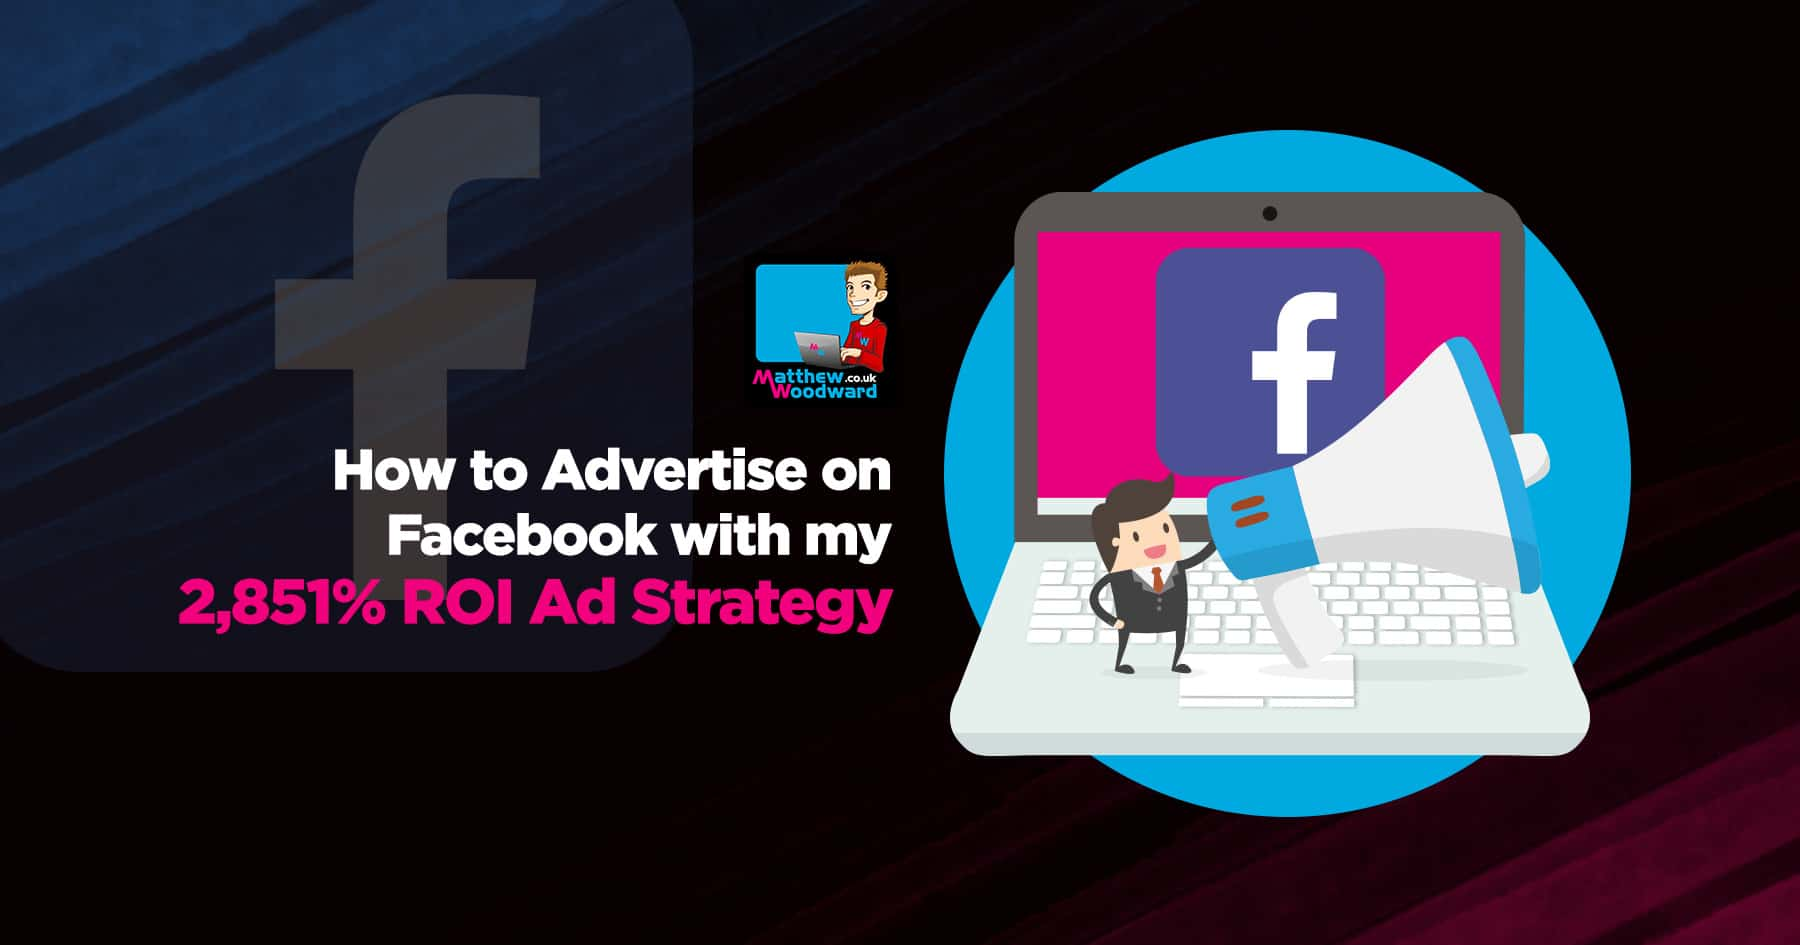 Learn How To Advertise On Facebook With My 2,851% ROI Ad Strategy